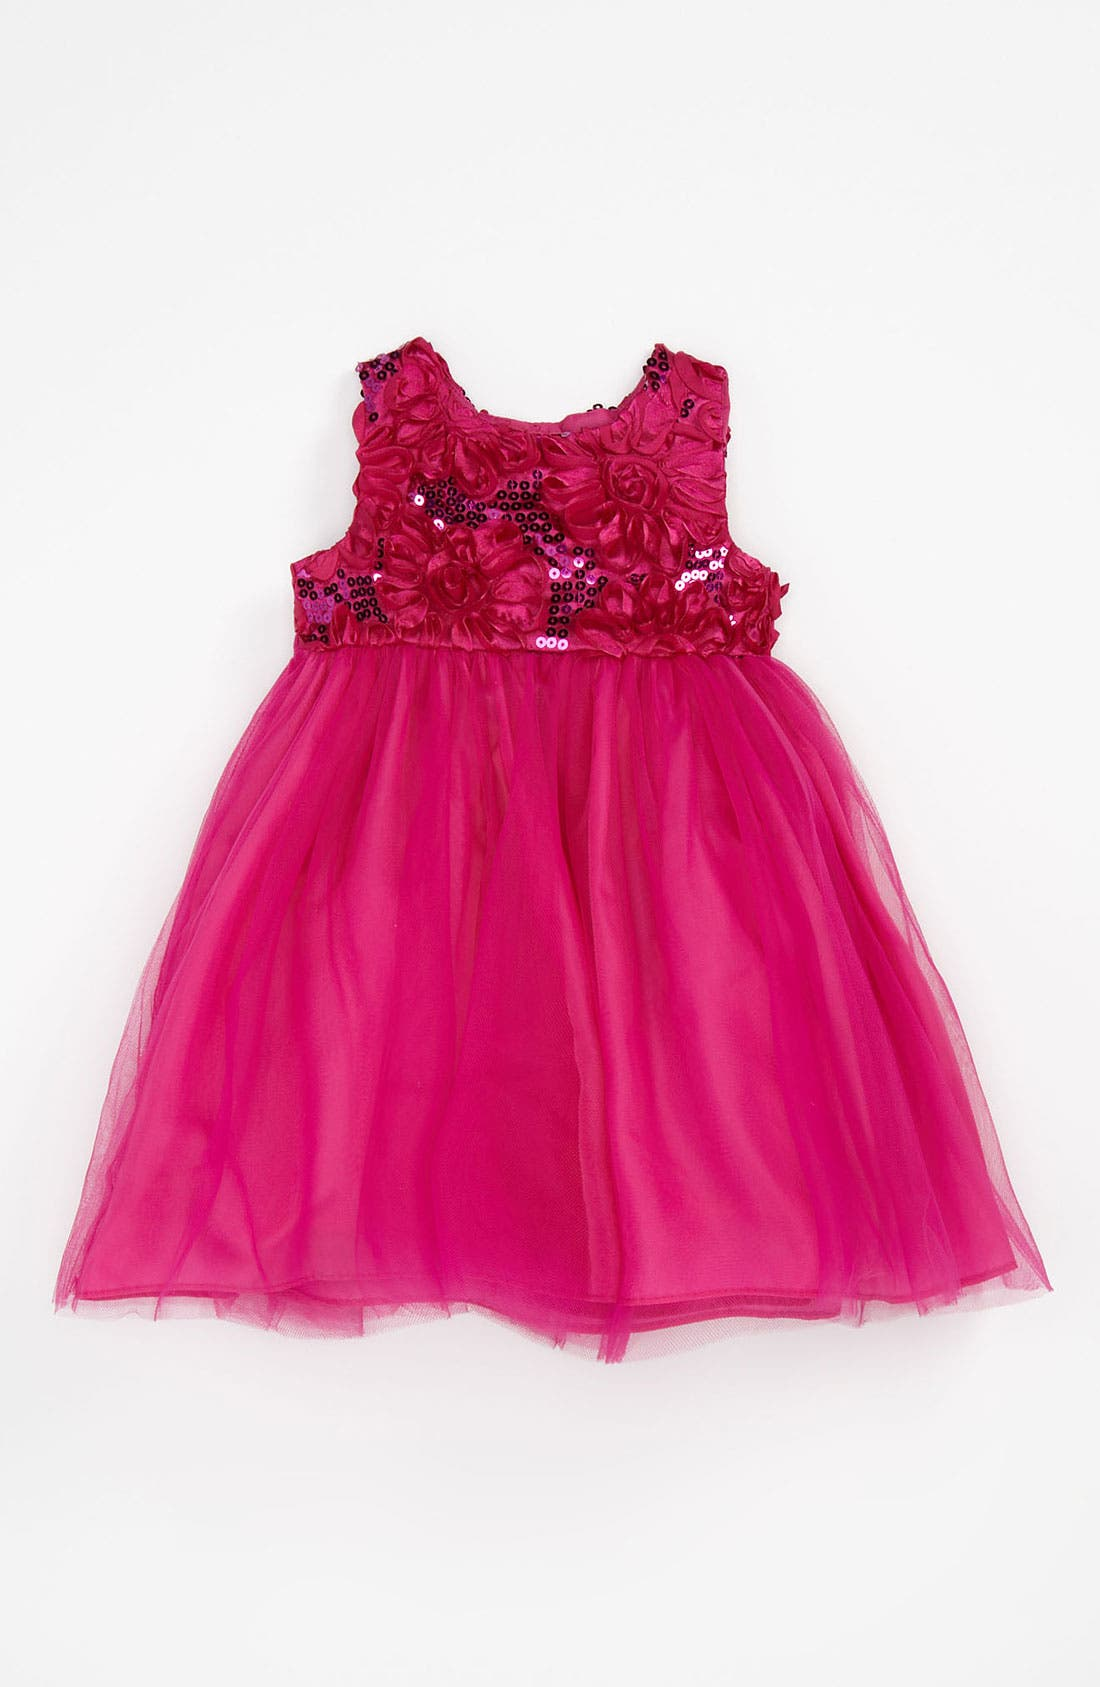 Sequin Ballerina Dress,                             Main thumbnail 1, color,                             650